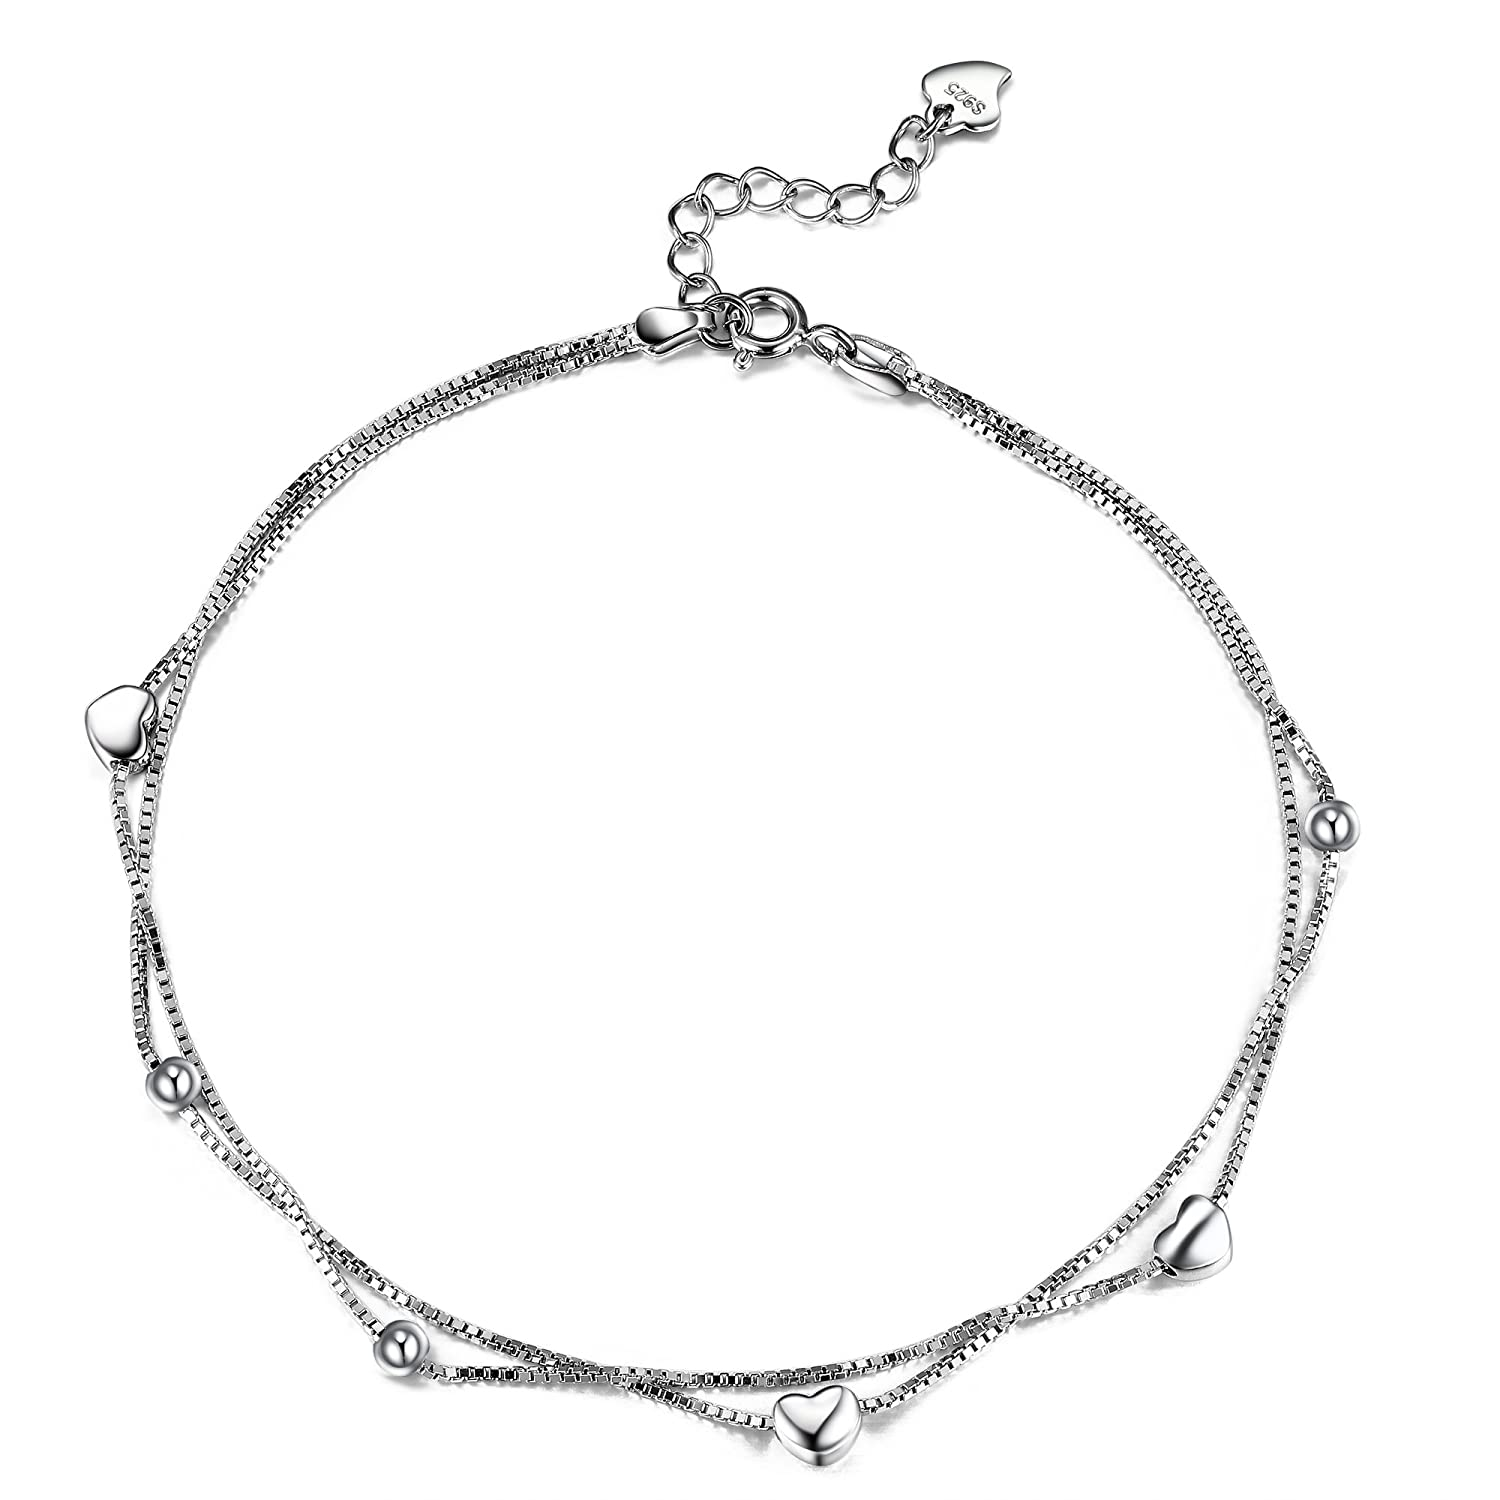 Lydreewam Women Anklet Bracelet 925 Sterling Silver 2 Layers Love Heart Chain for Beach Sandal Barefoot Adjustable 26cm